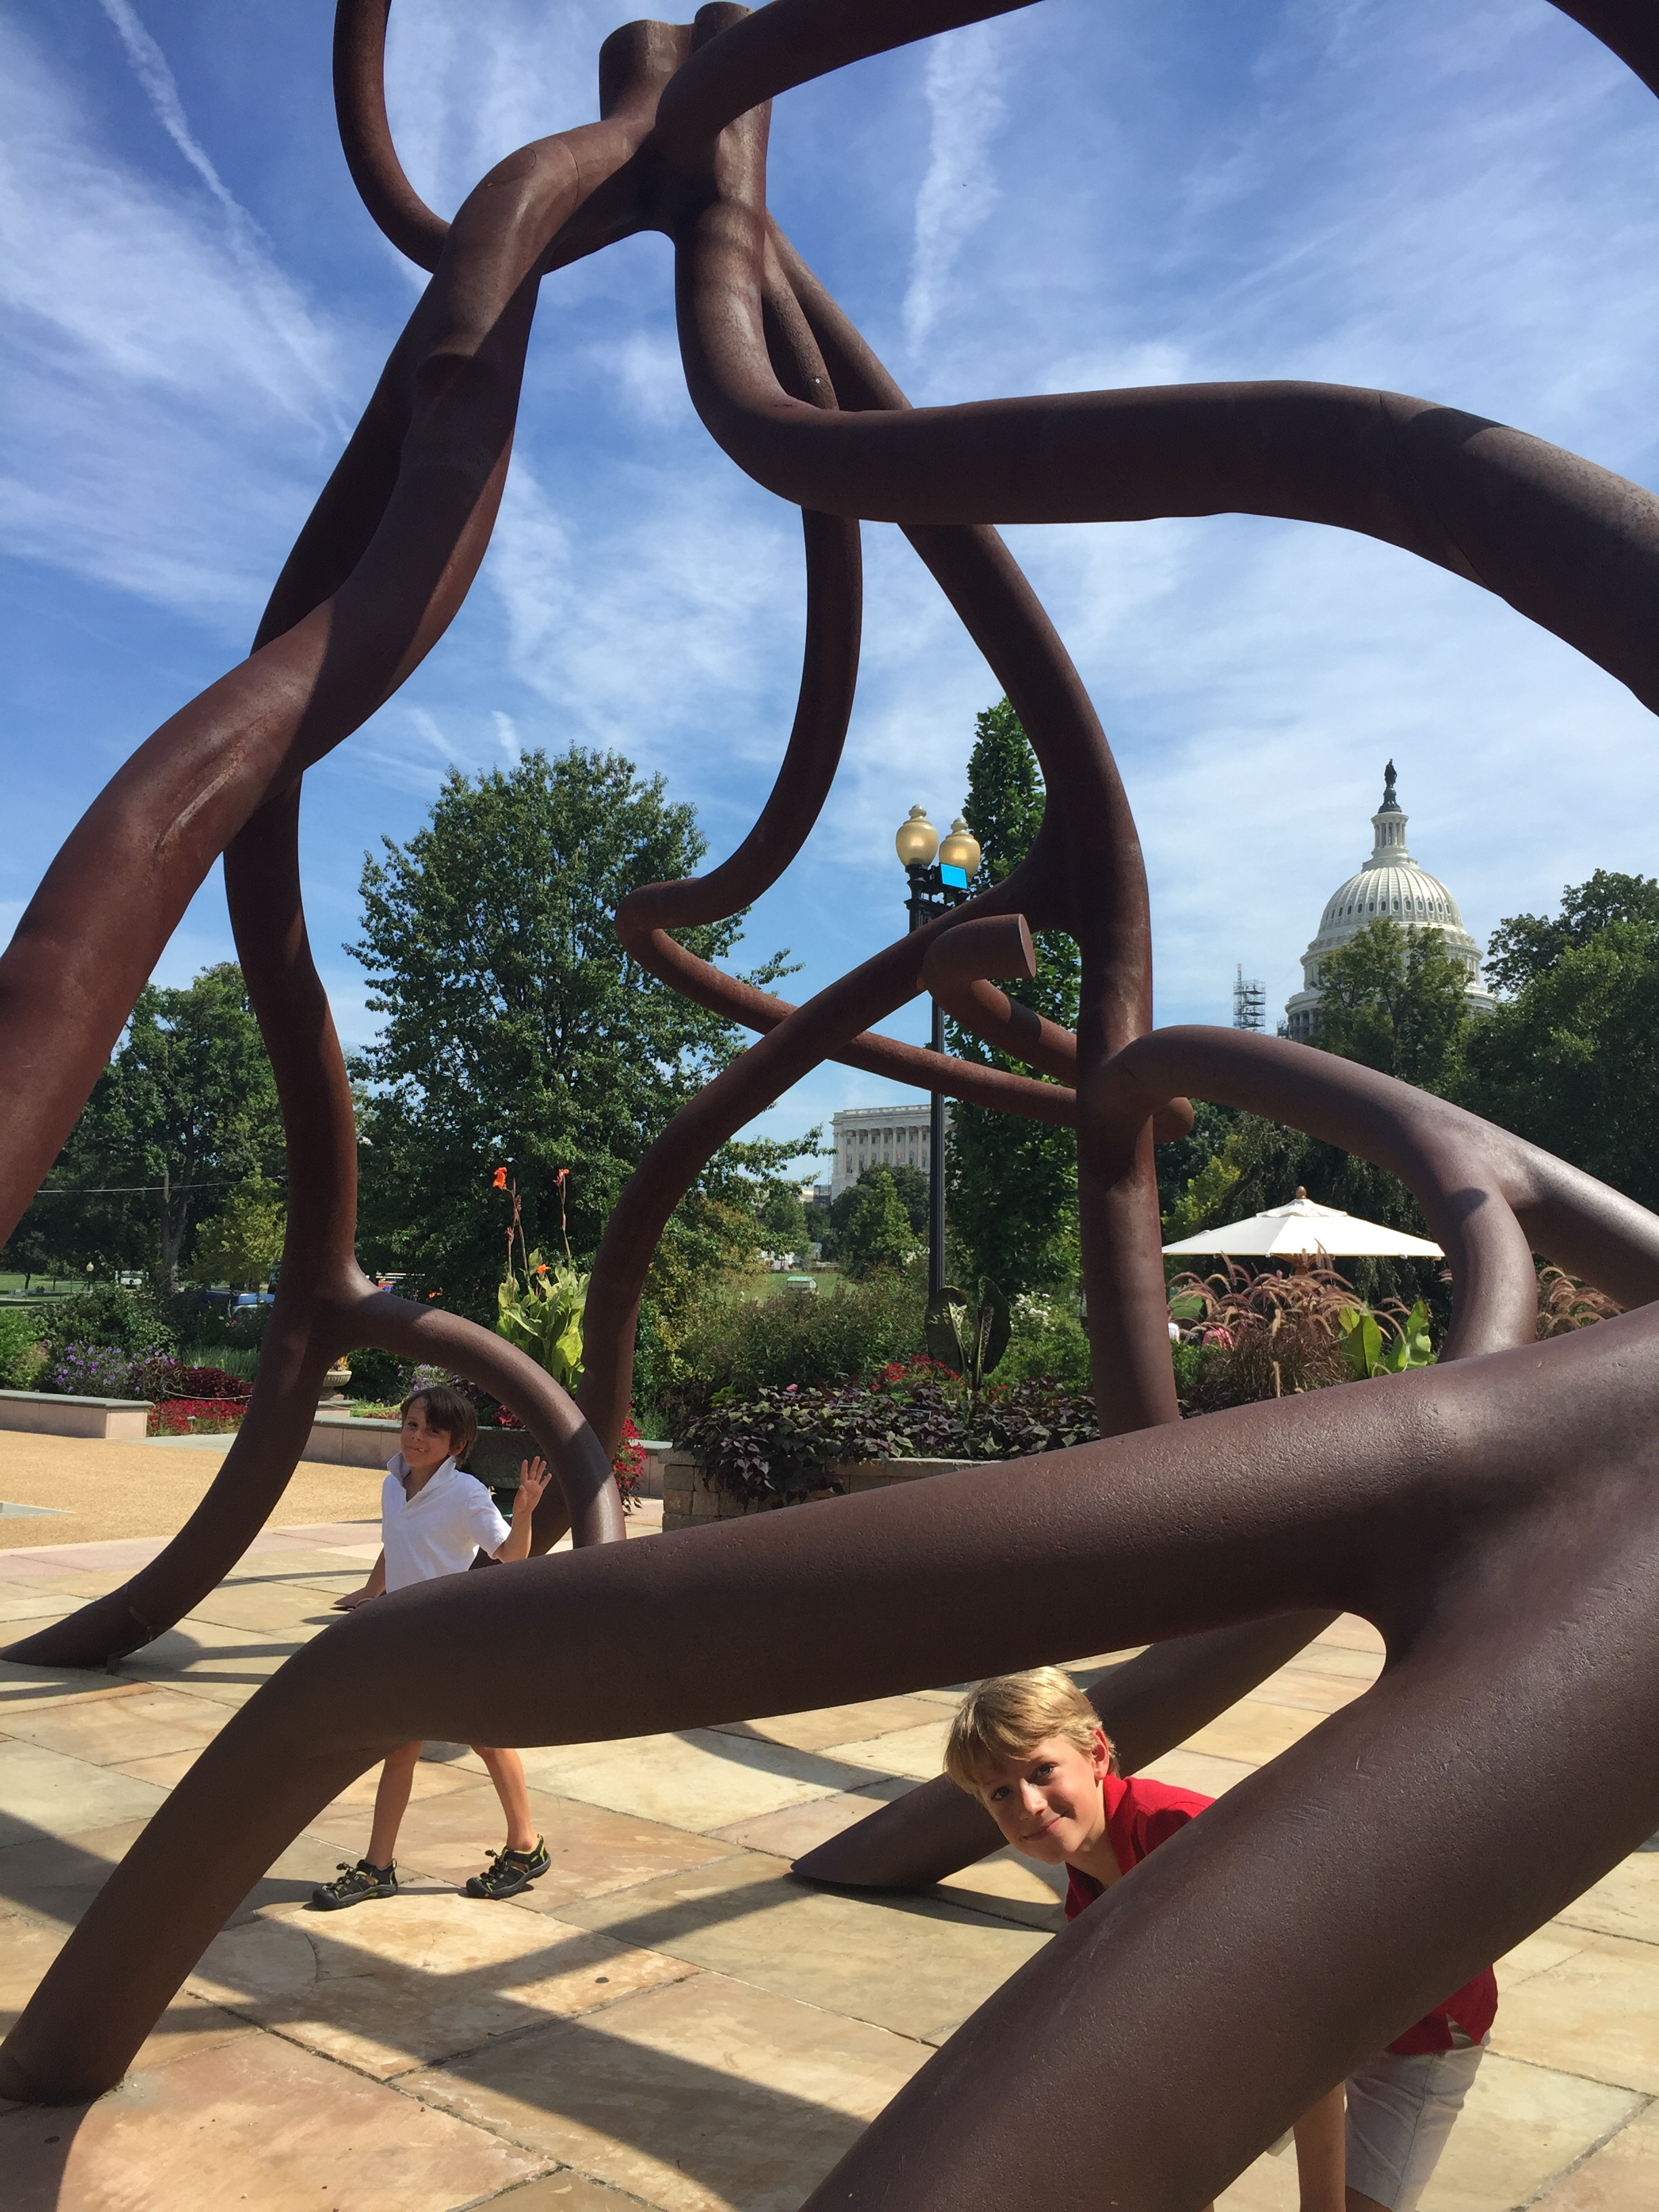 the Root sculpture in front of the Botanic Garden. See the Capitol peeking out in the background?